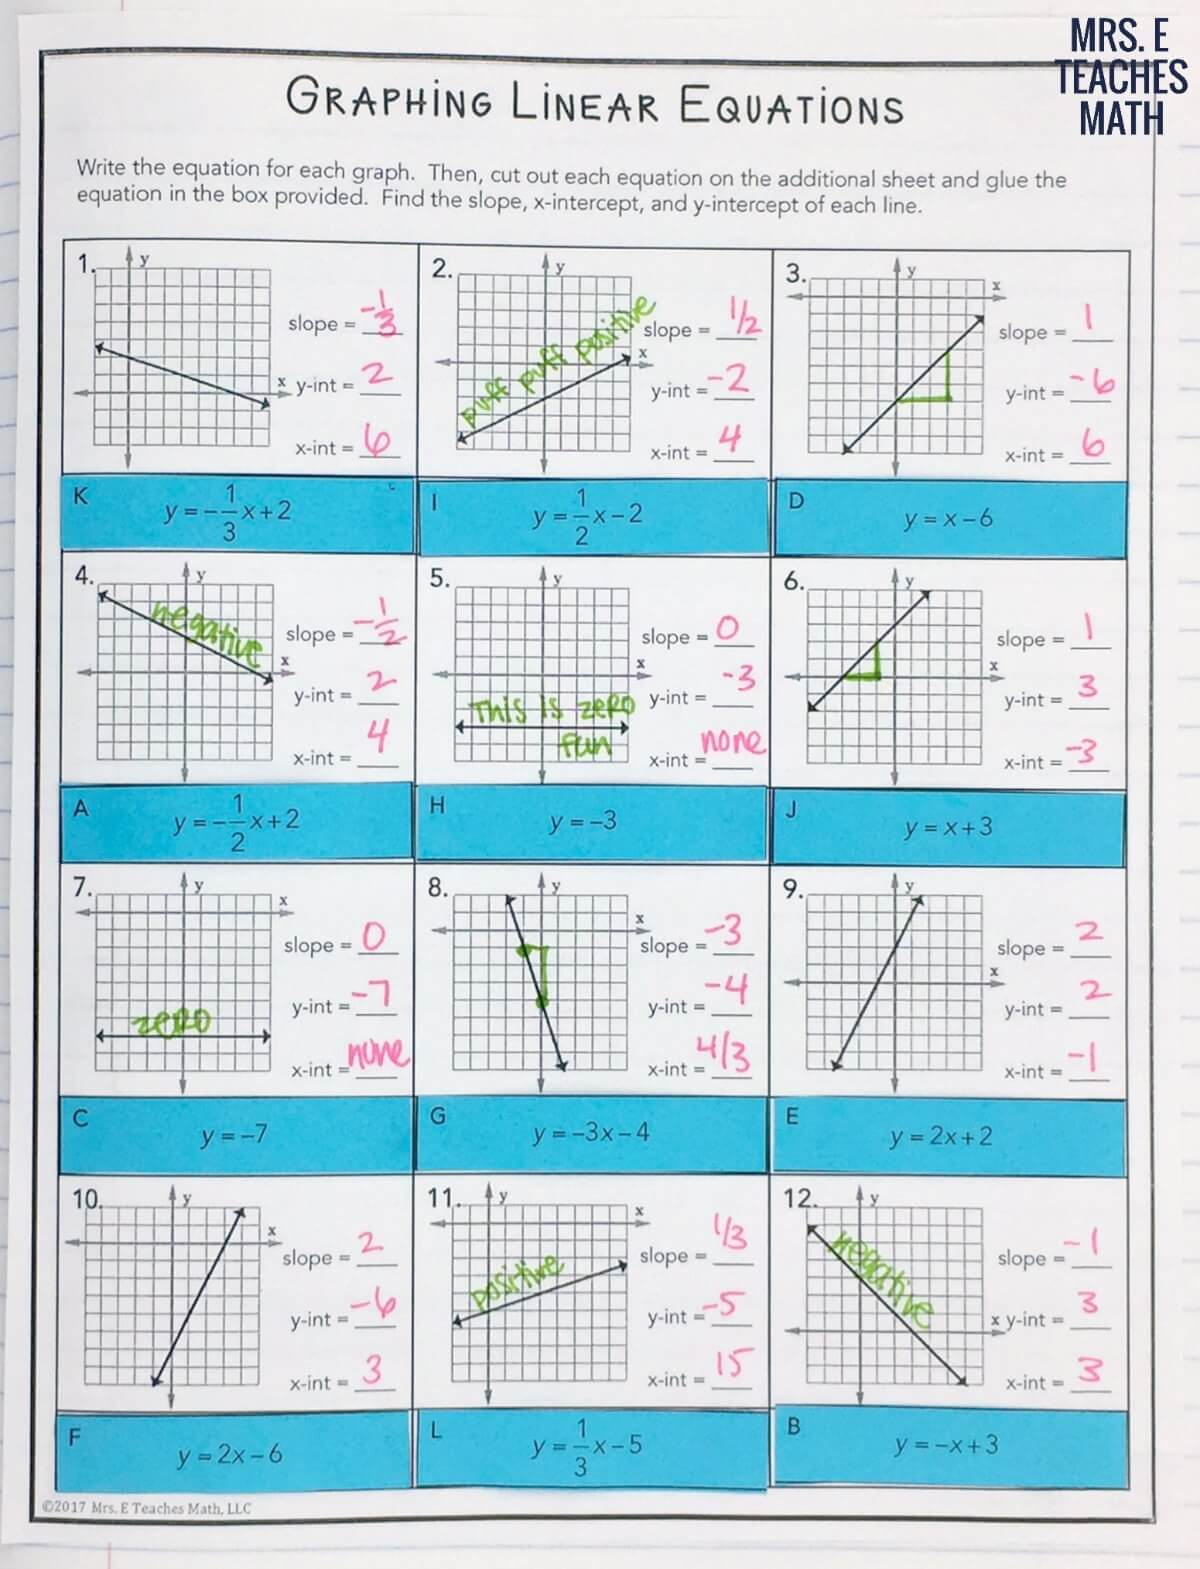 Graphing Linear Equations Cut and Paste Worksheet 6024124 - aks ...